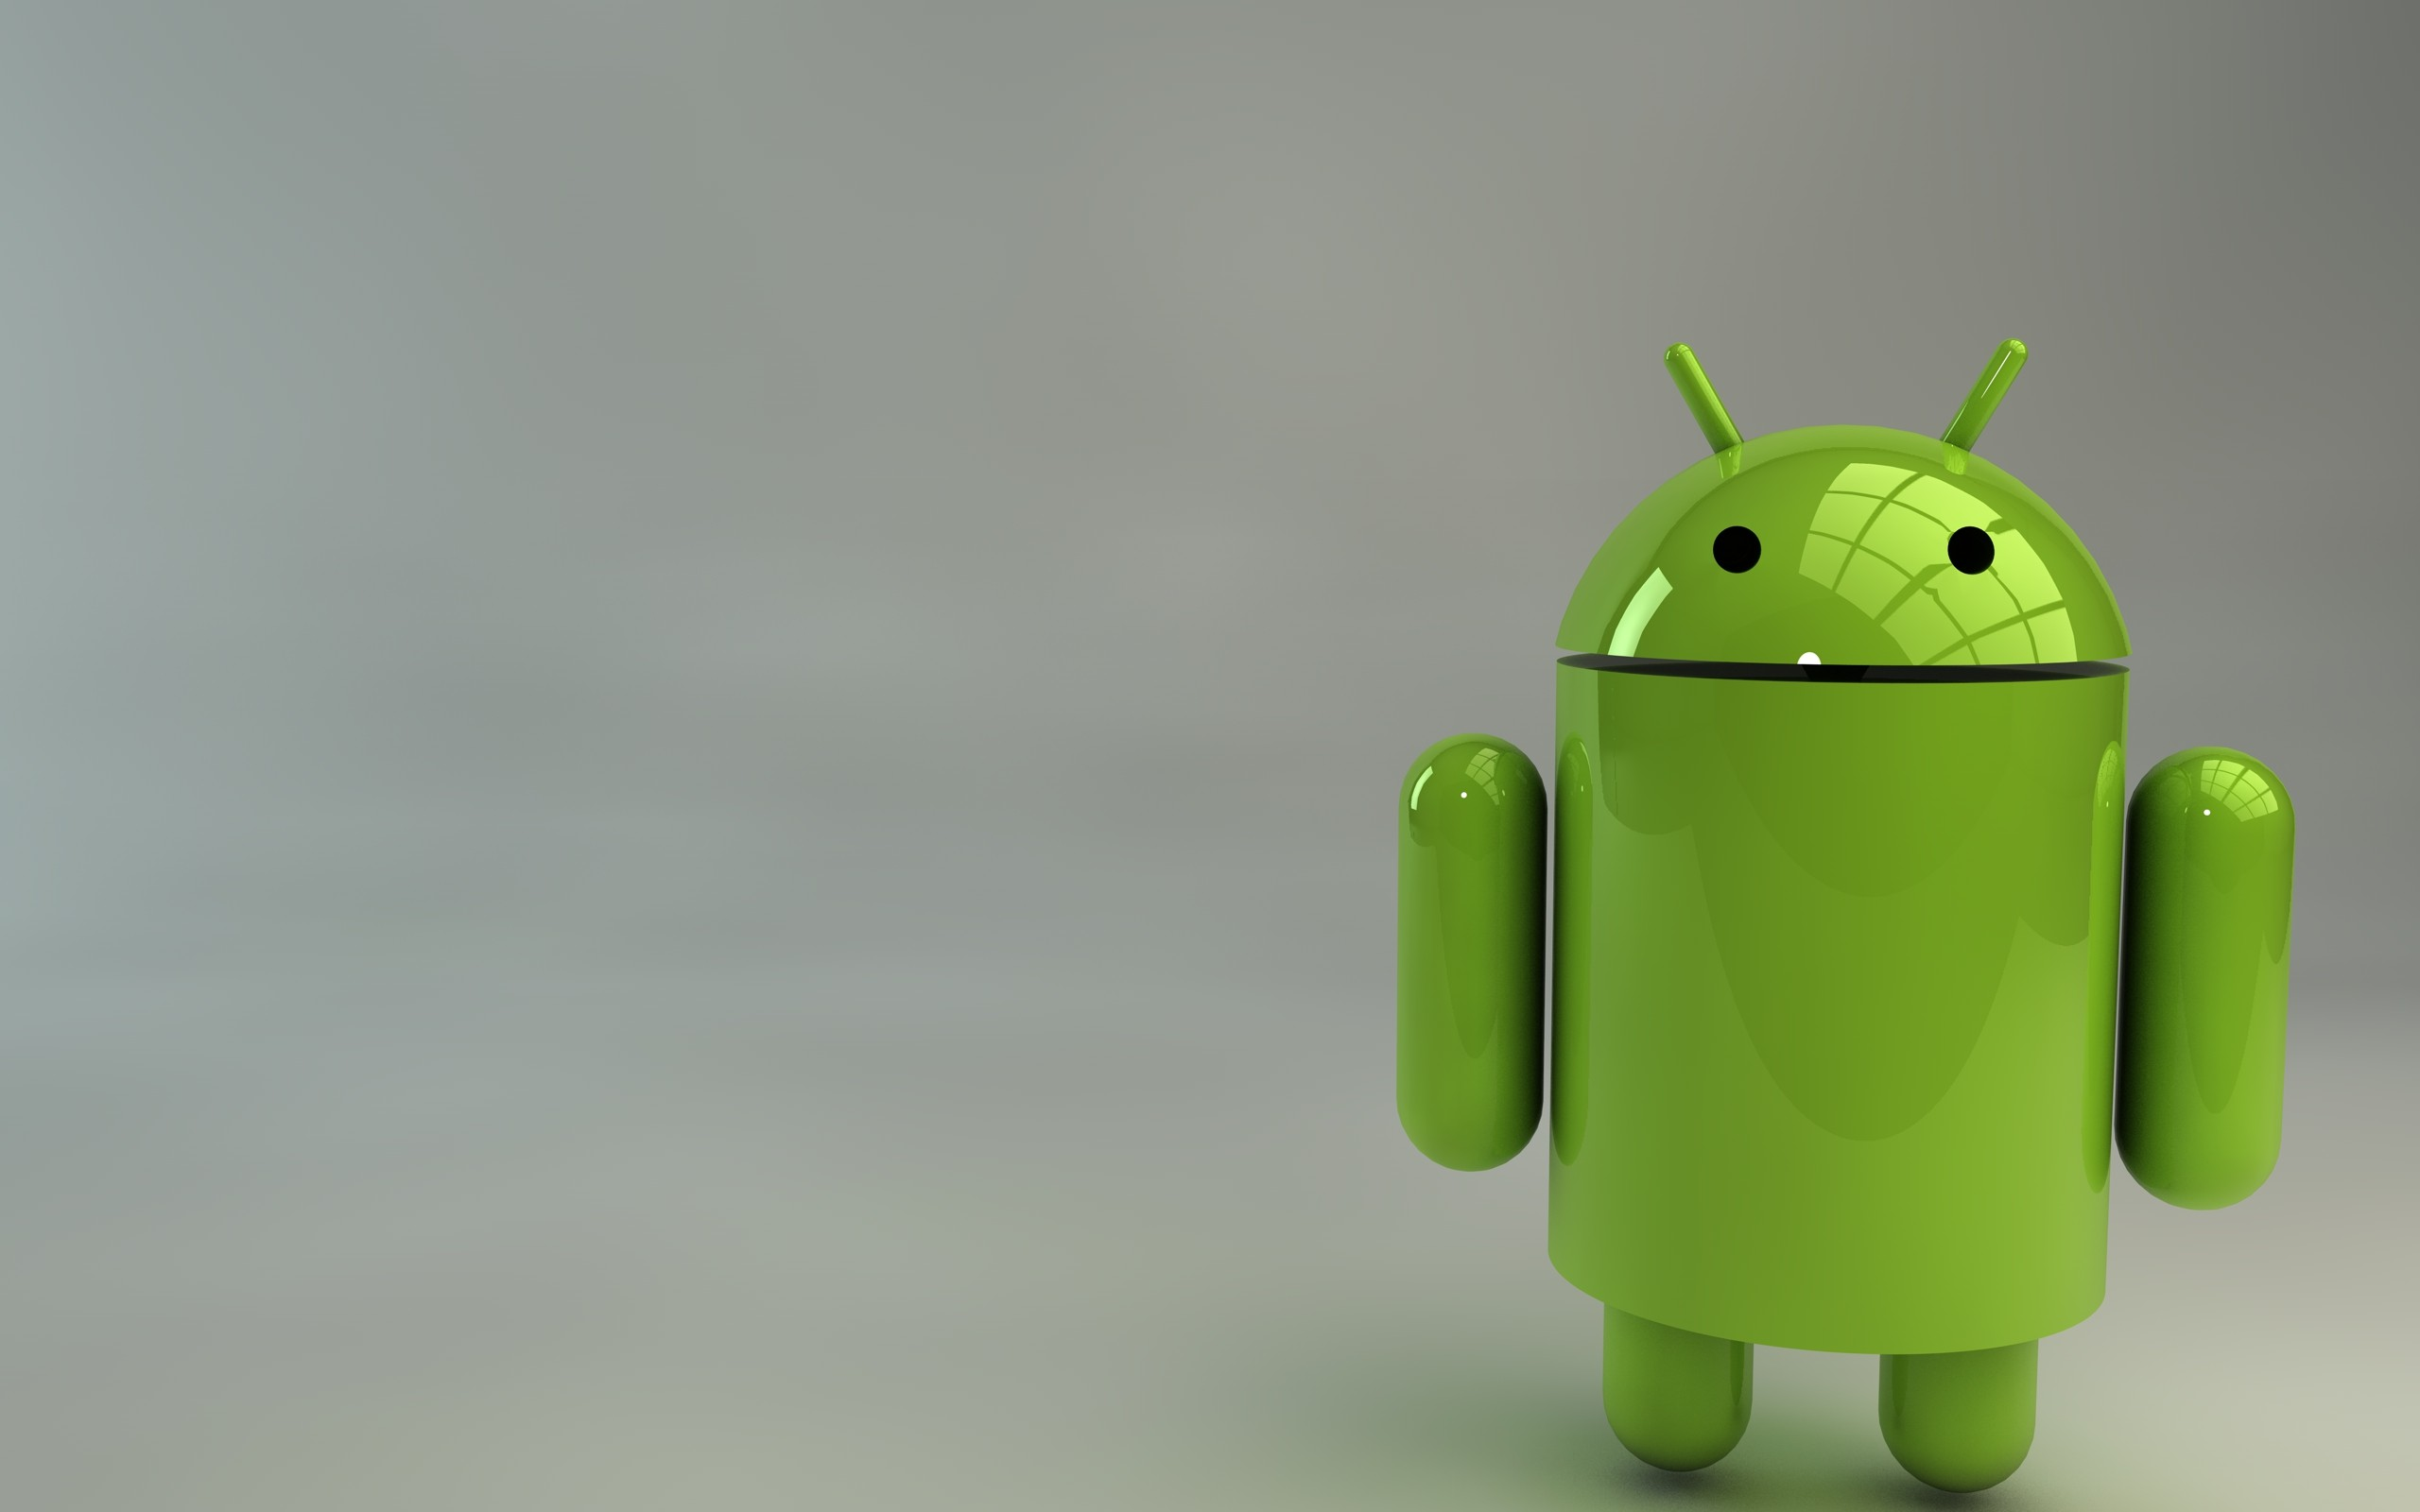 50 Free Android Wallpapers On Wallpapersafari